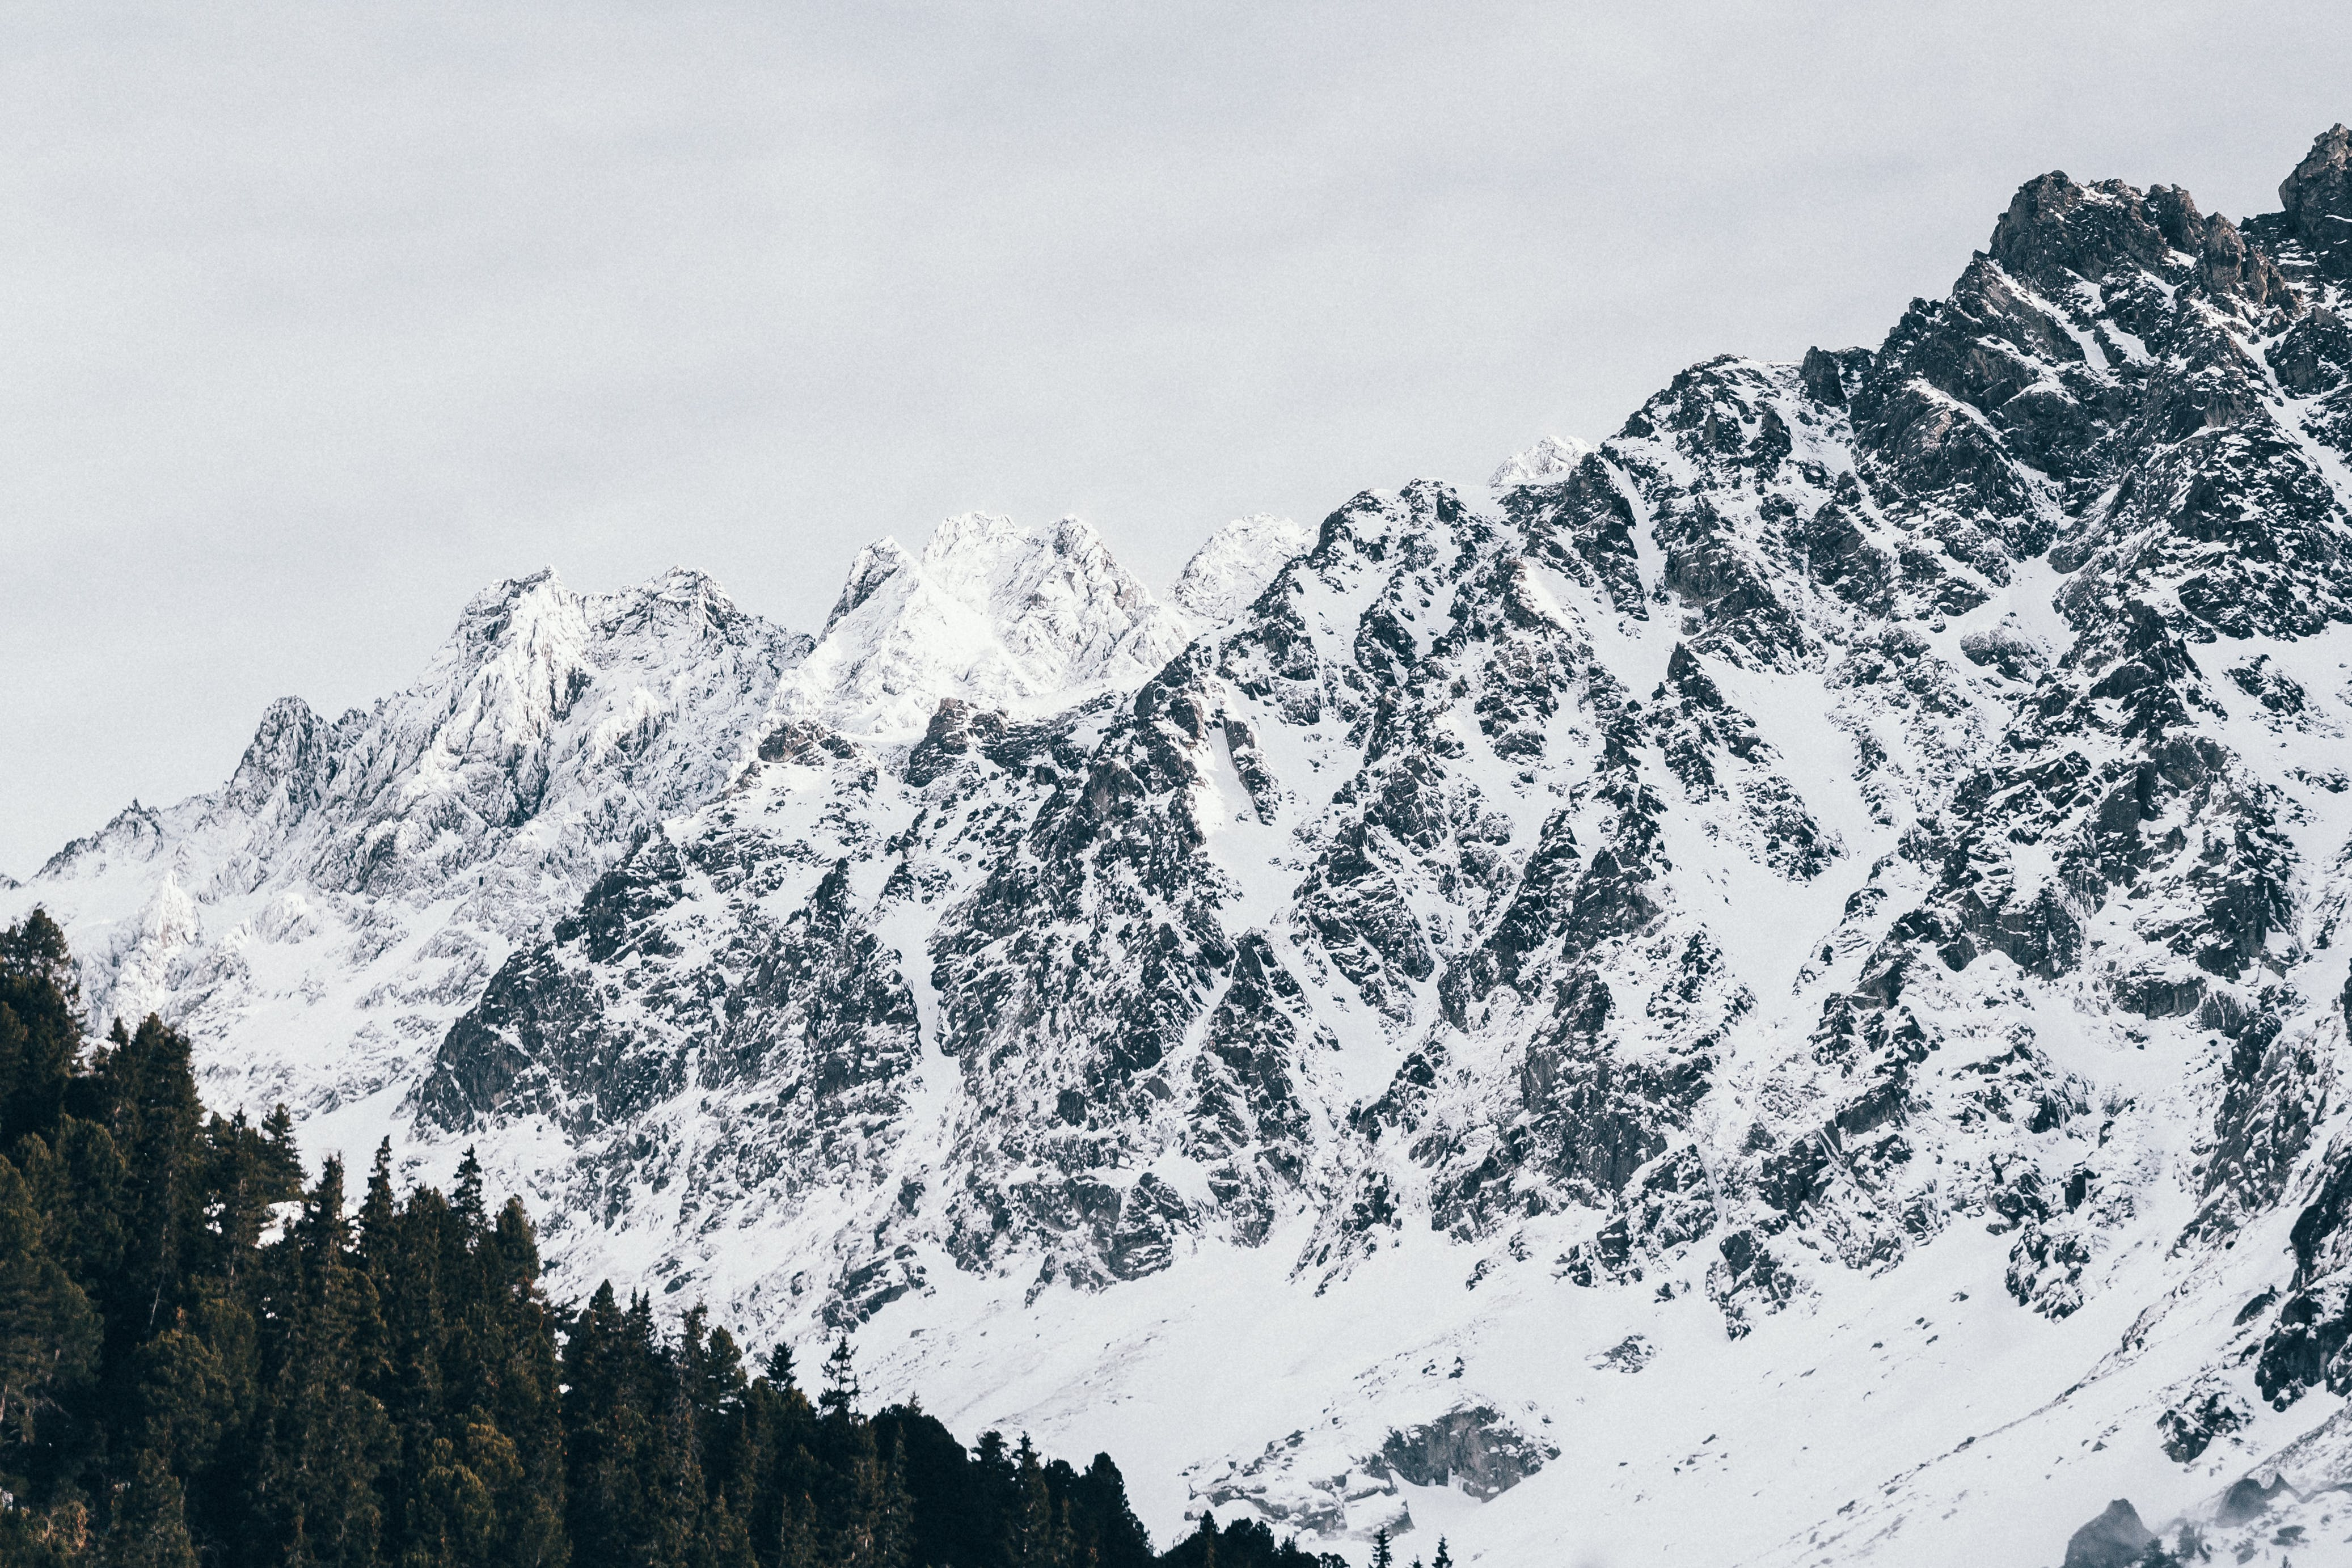 Mountain Cover by Snow at Daytime